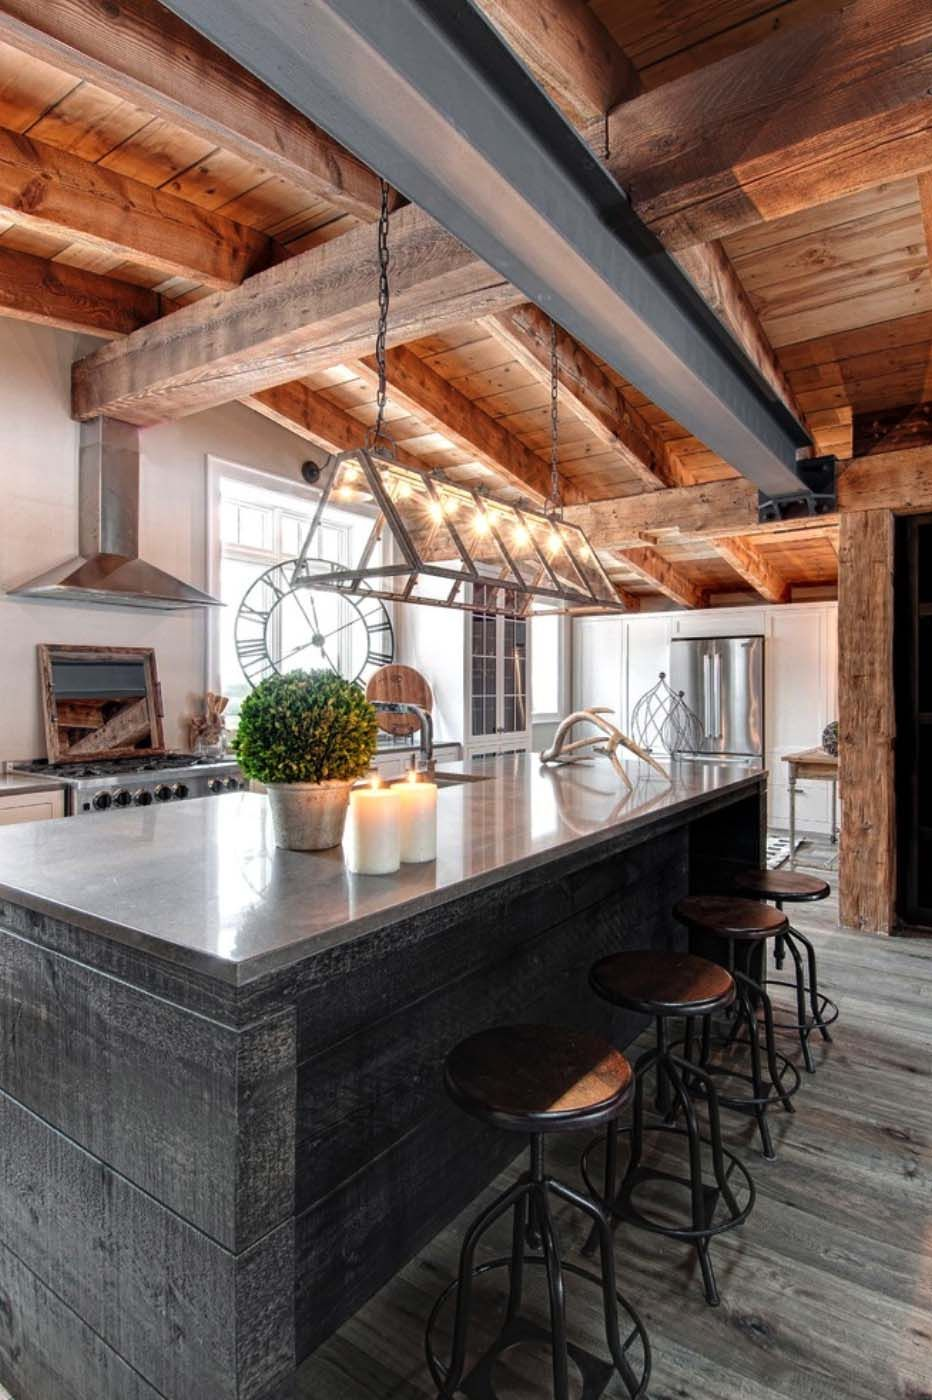 Superb Luxury Canadian Home Reveals Splendid Rustic Modern Aesthetic